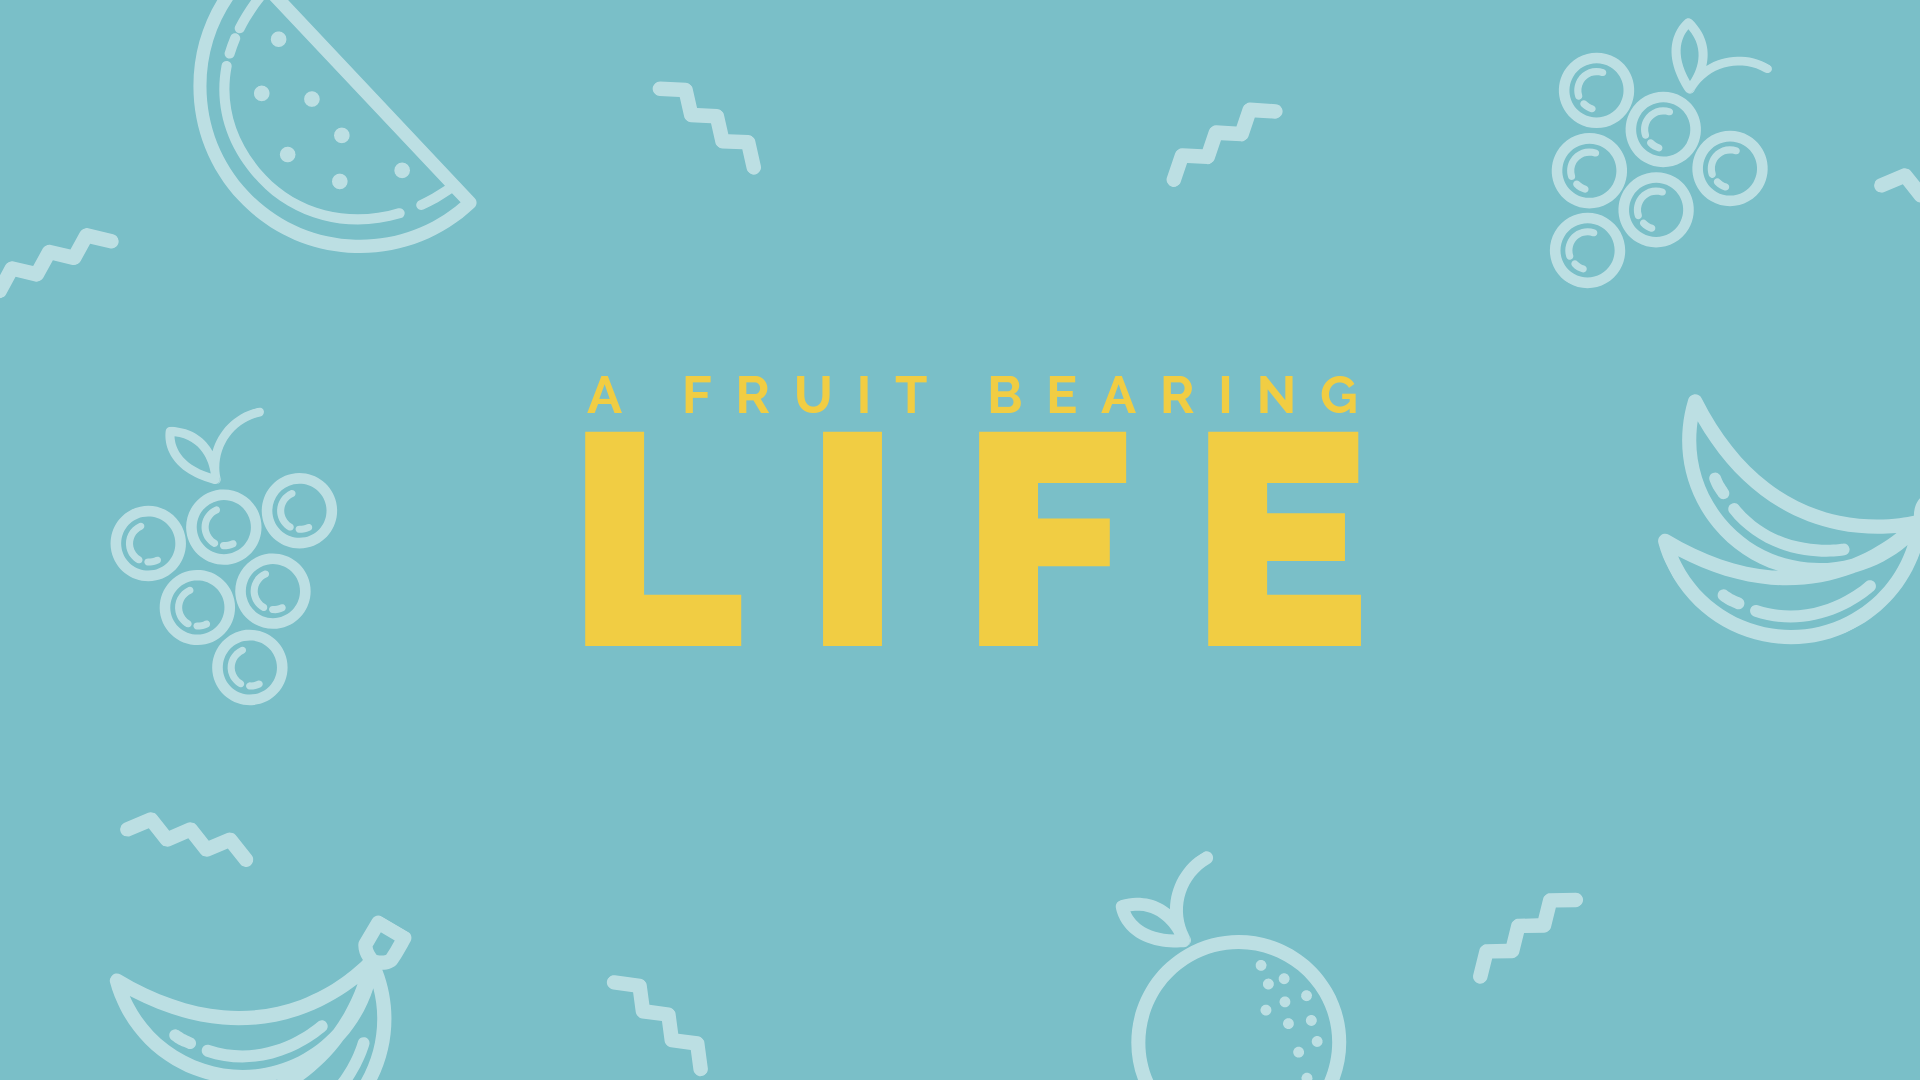 A Fruit Bearing Life